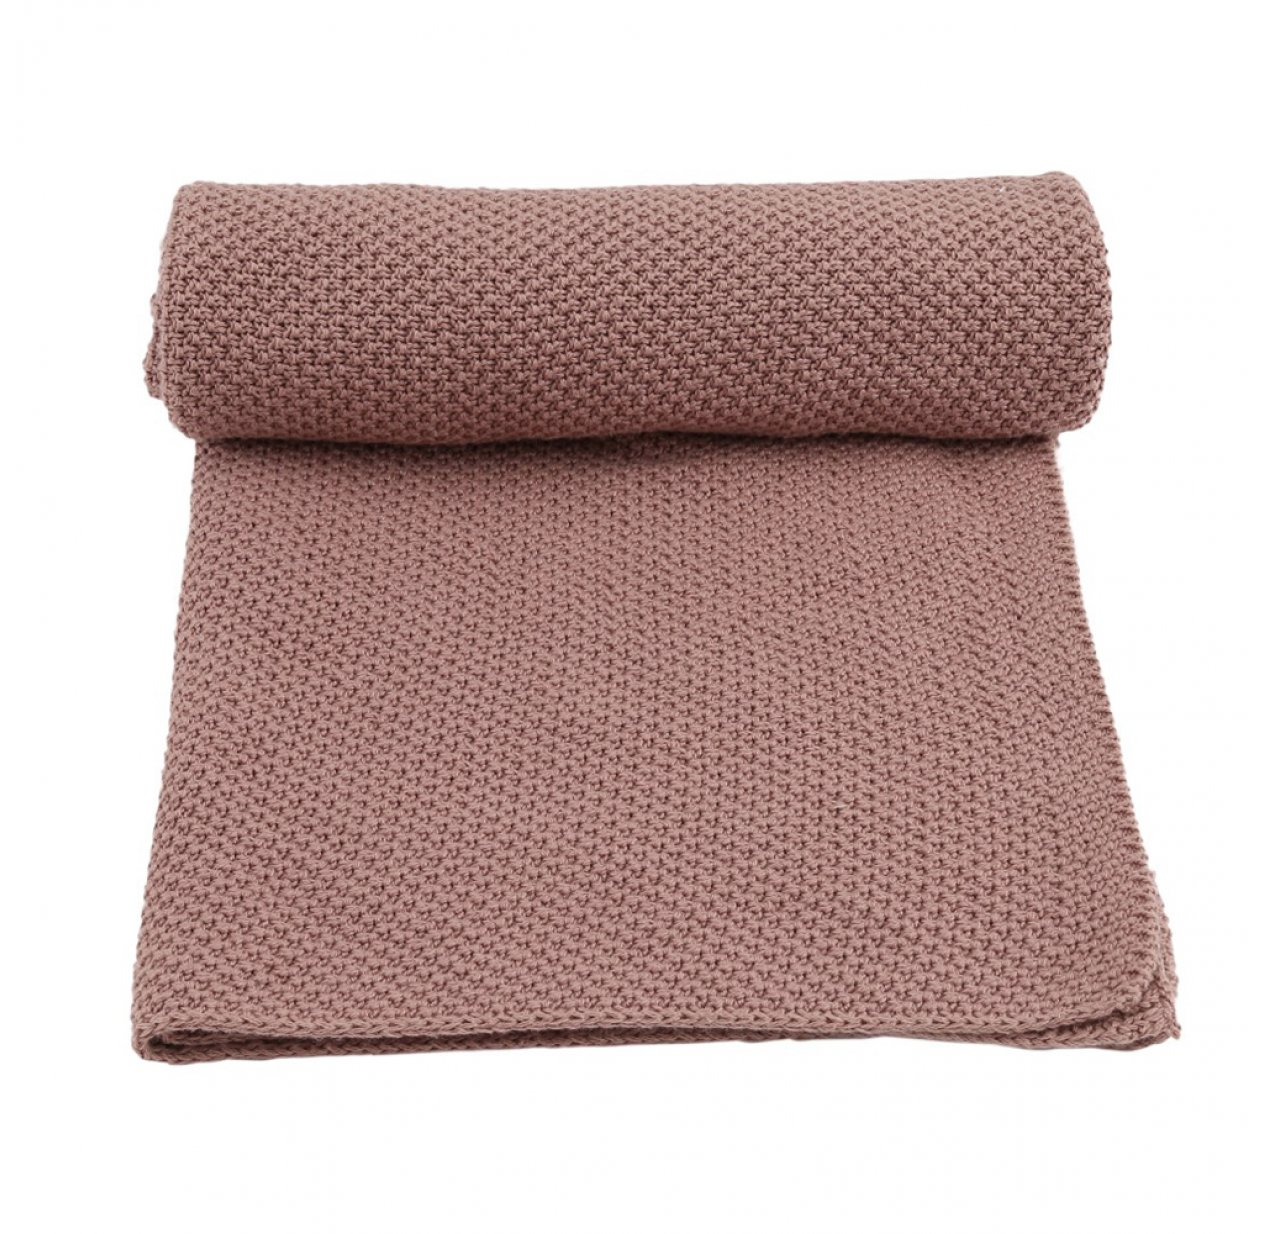 Couverture en tricot New Stitch - Rose fawn